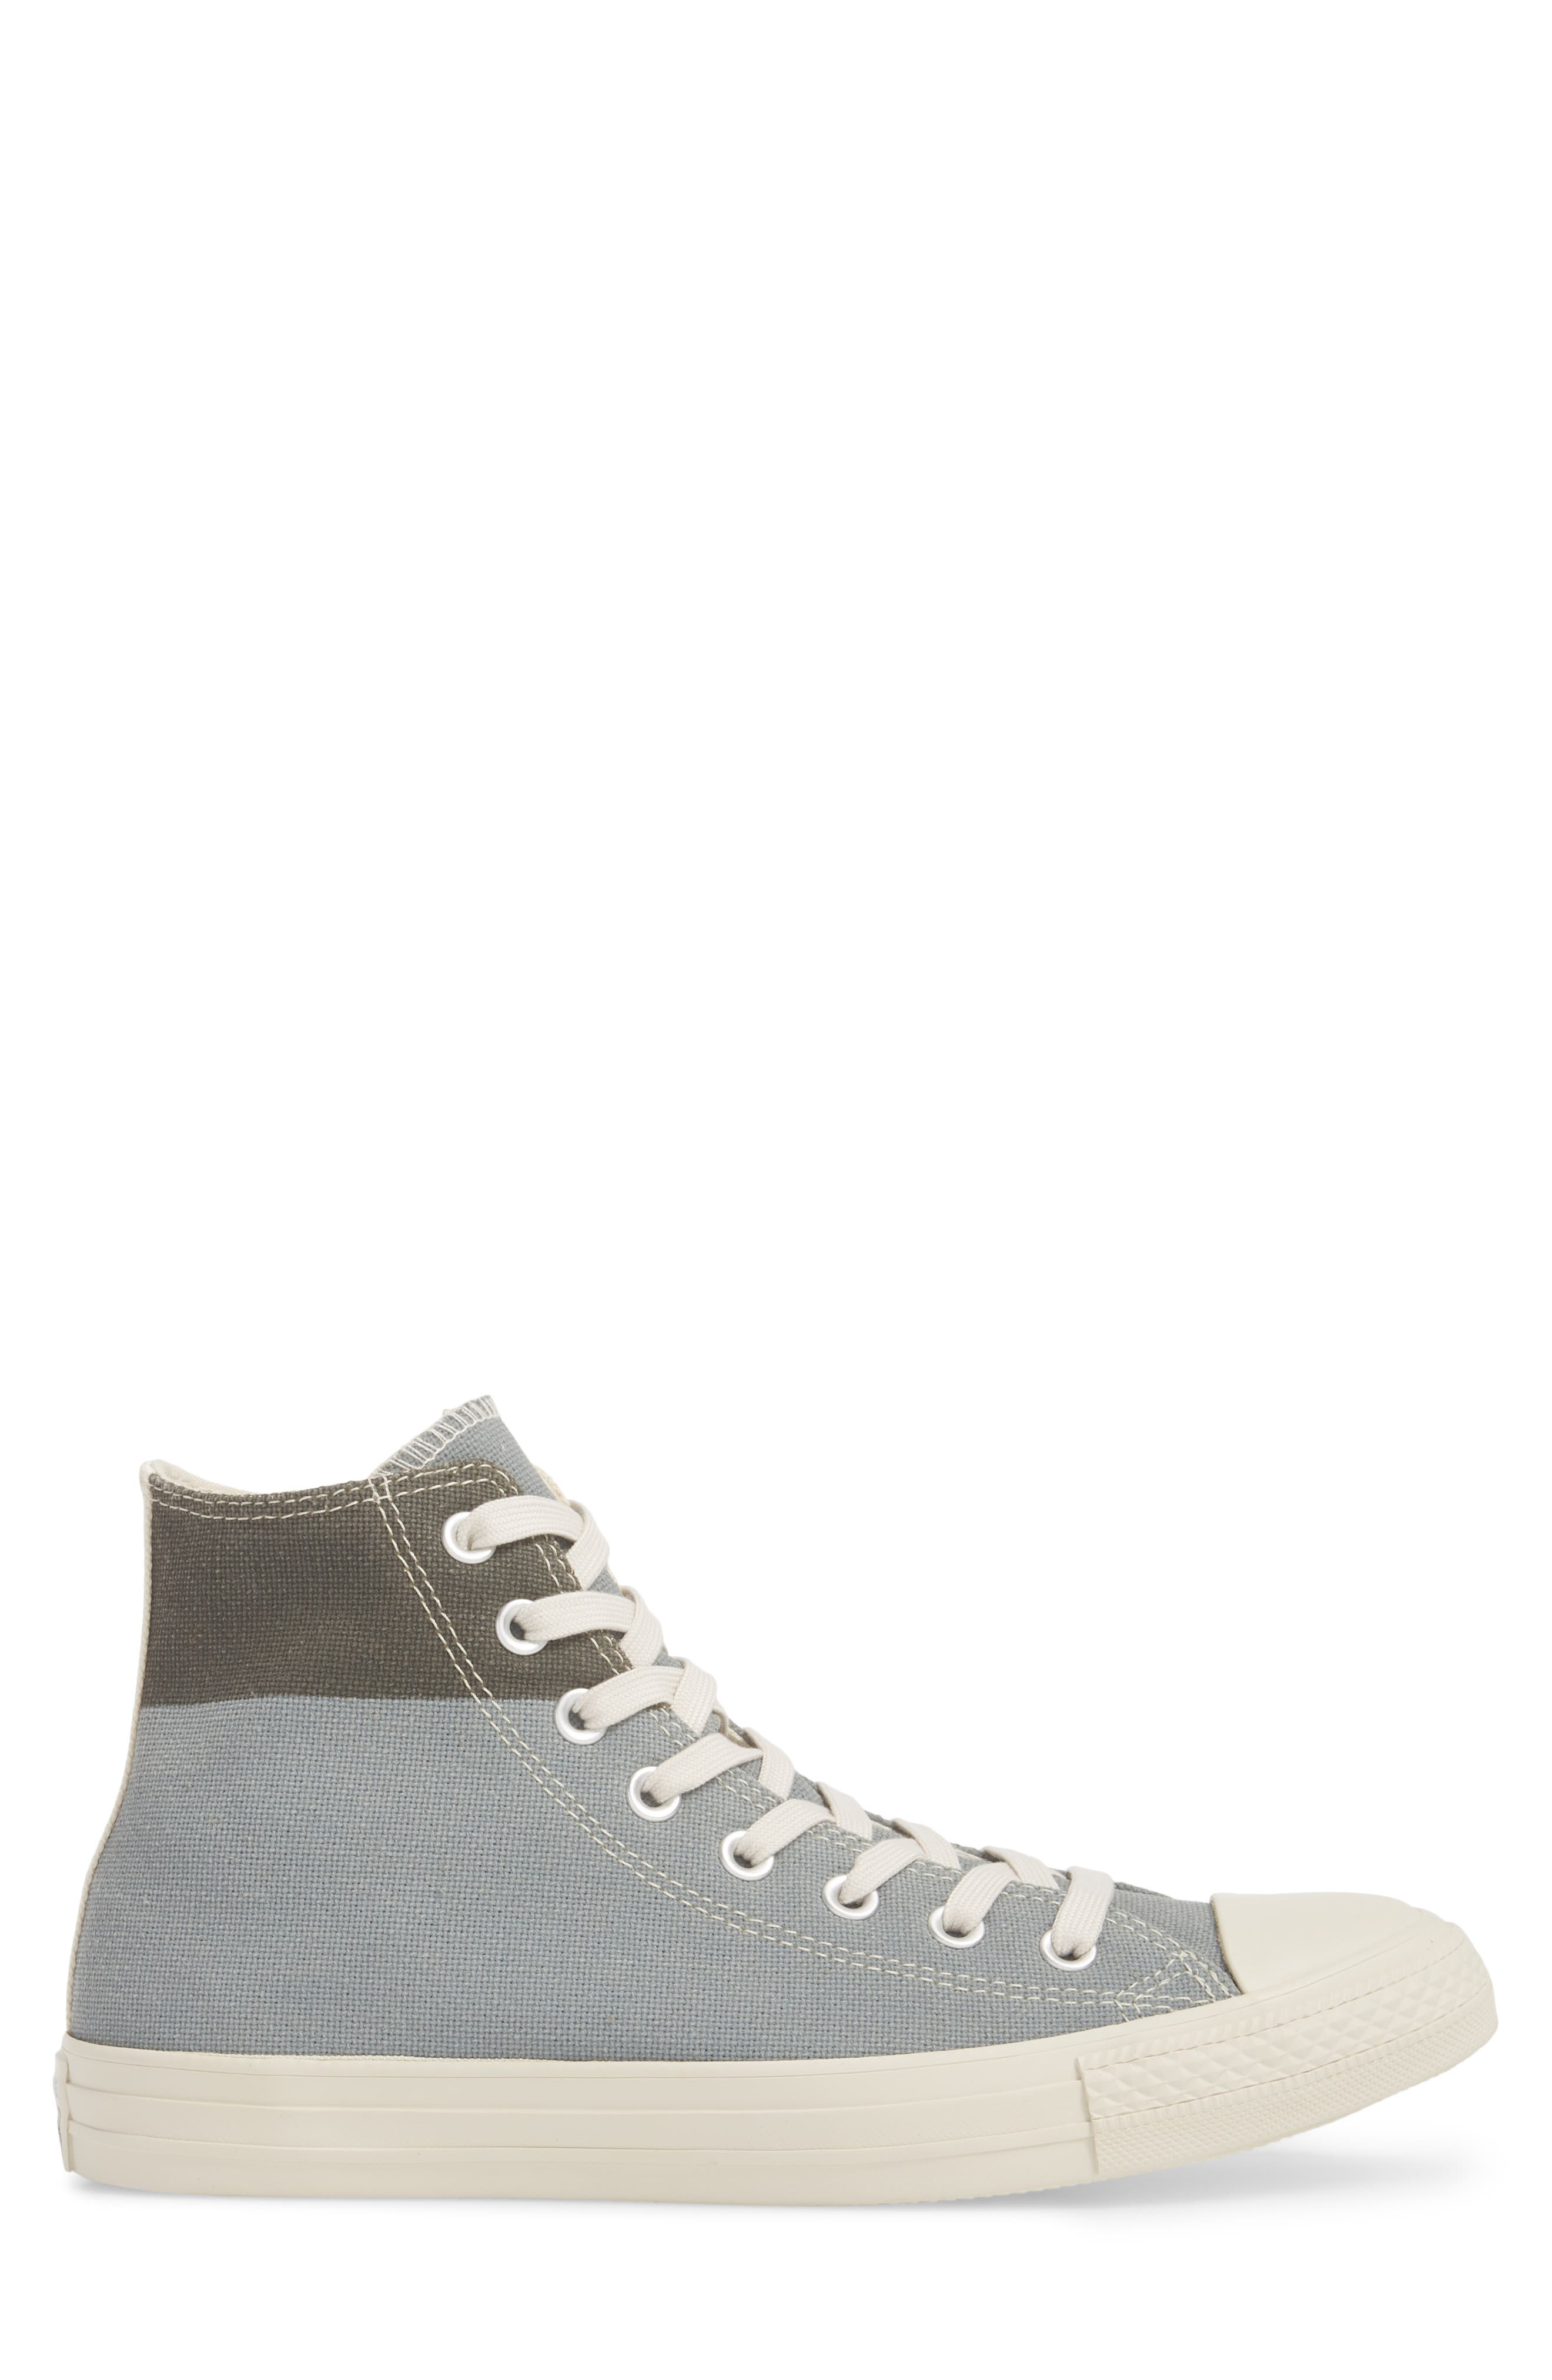 Chuck Taylor<sup>®</sup> All Star<sup>®</sup> Jute Americana High Top Sneaker,                             Alternate thumbnail 3, color,                             020